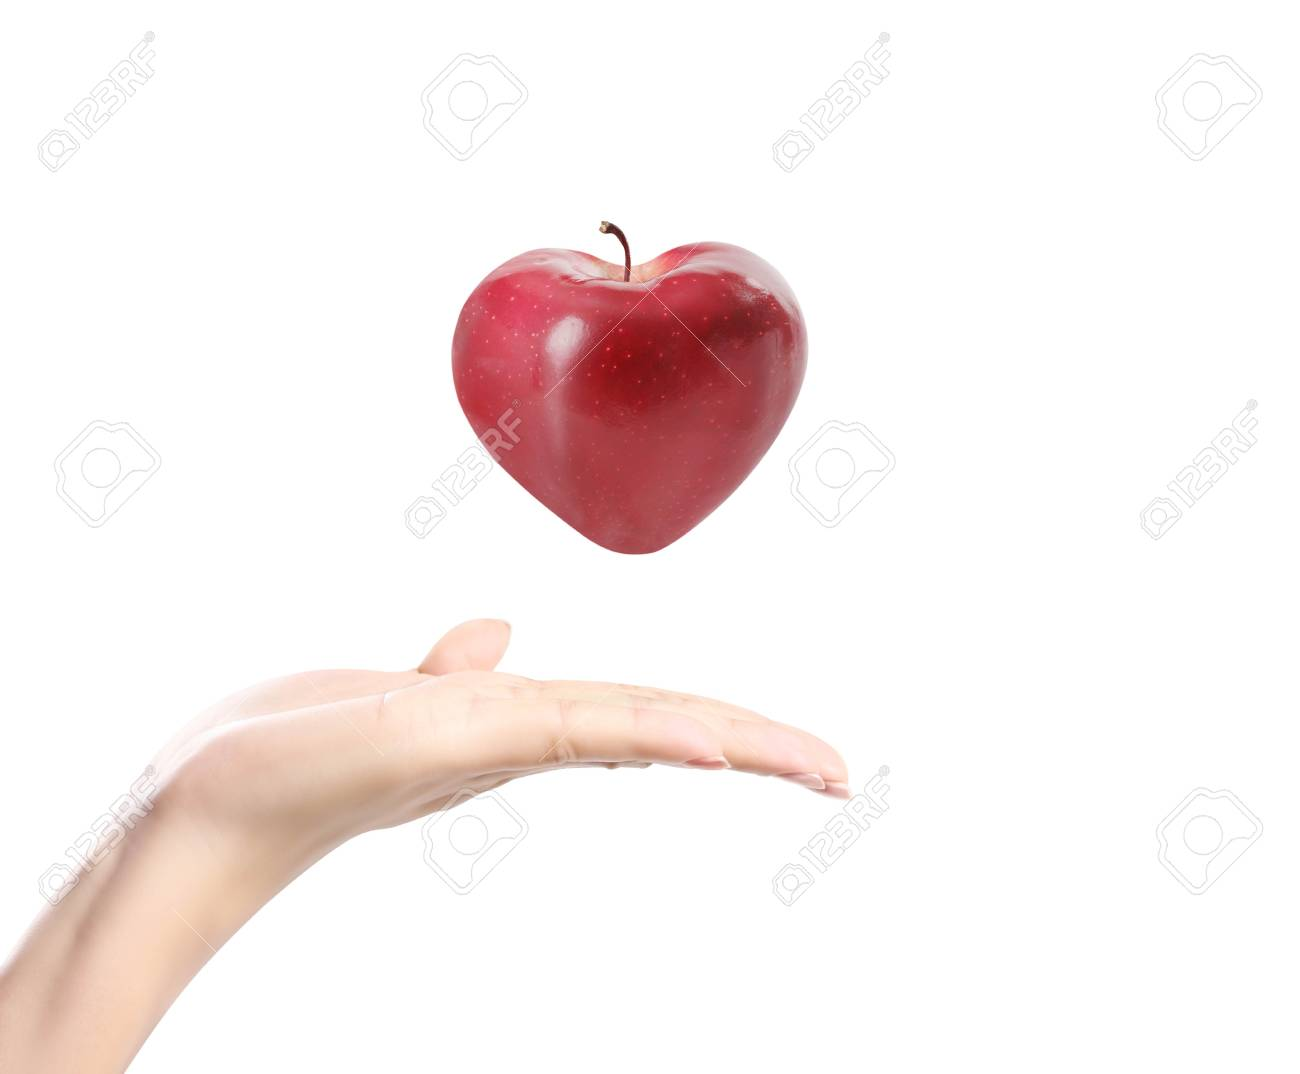 apple in a hand on white background Stock Photo - 15400784